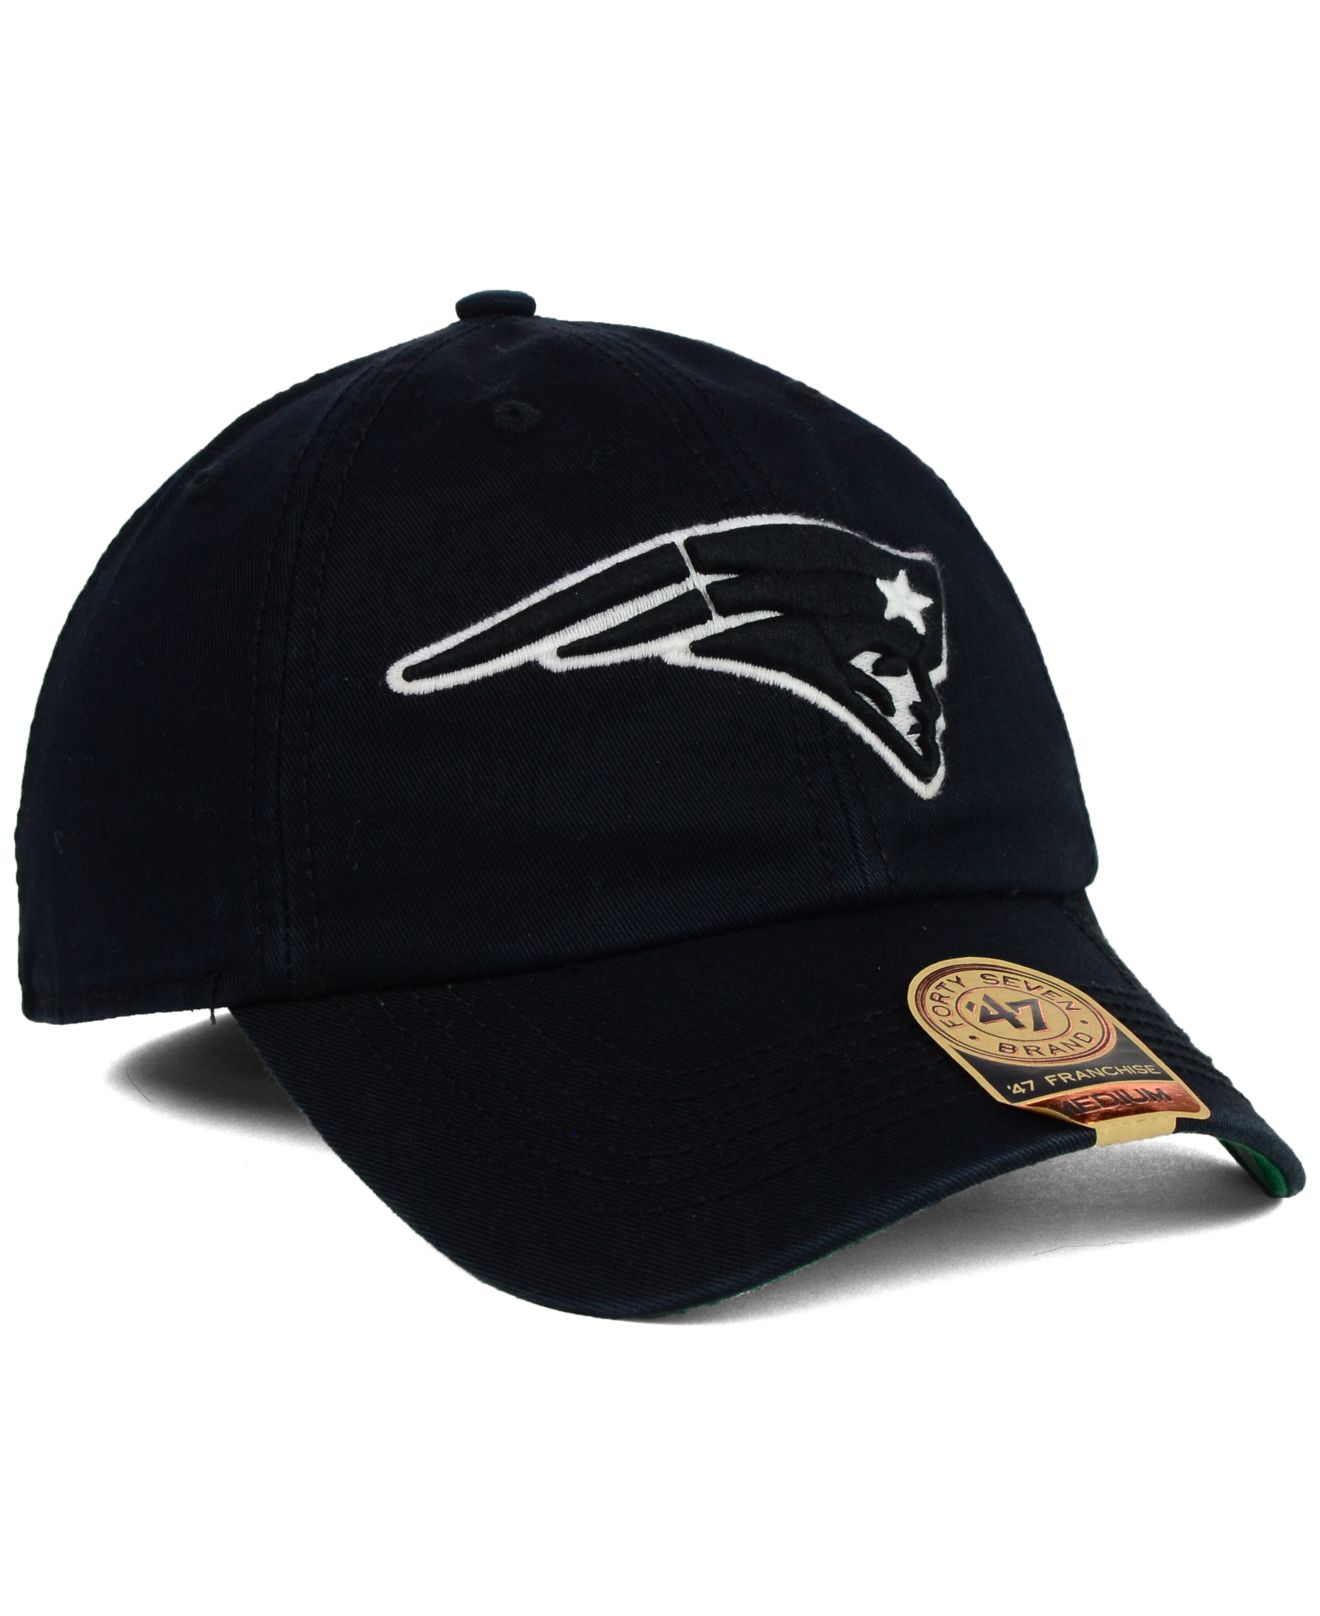 d7bce315a78e9 ... sale lyst 47 brand new england patriots black white franchise cap in  5ffa7 86e7a